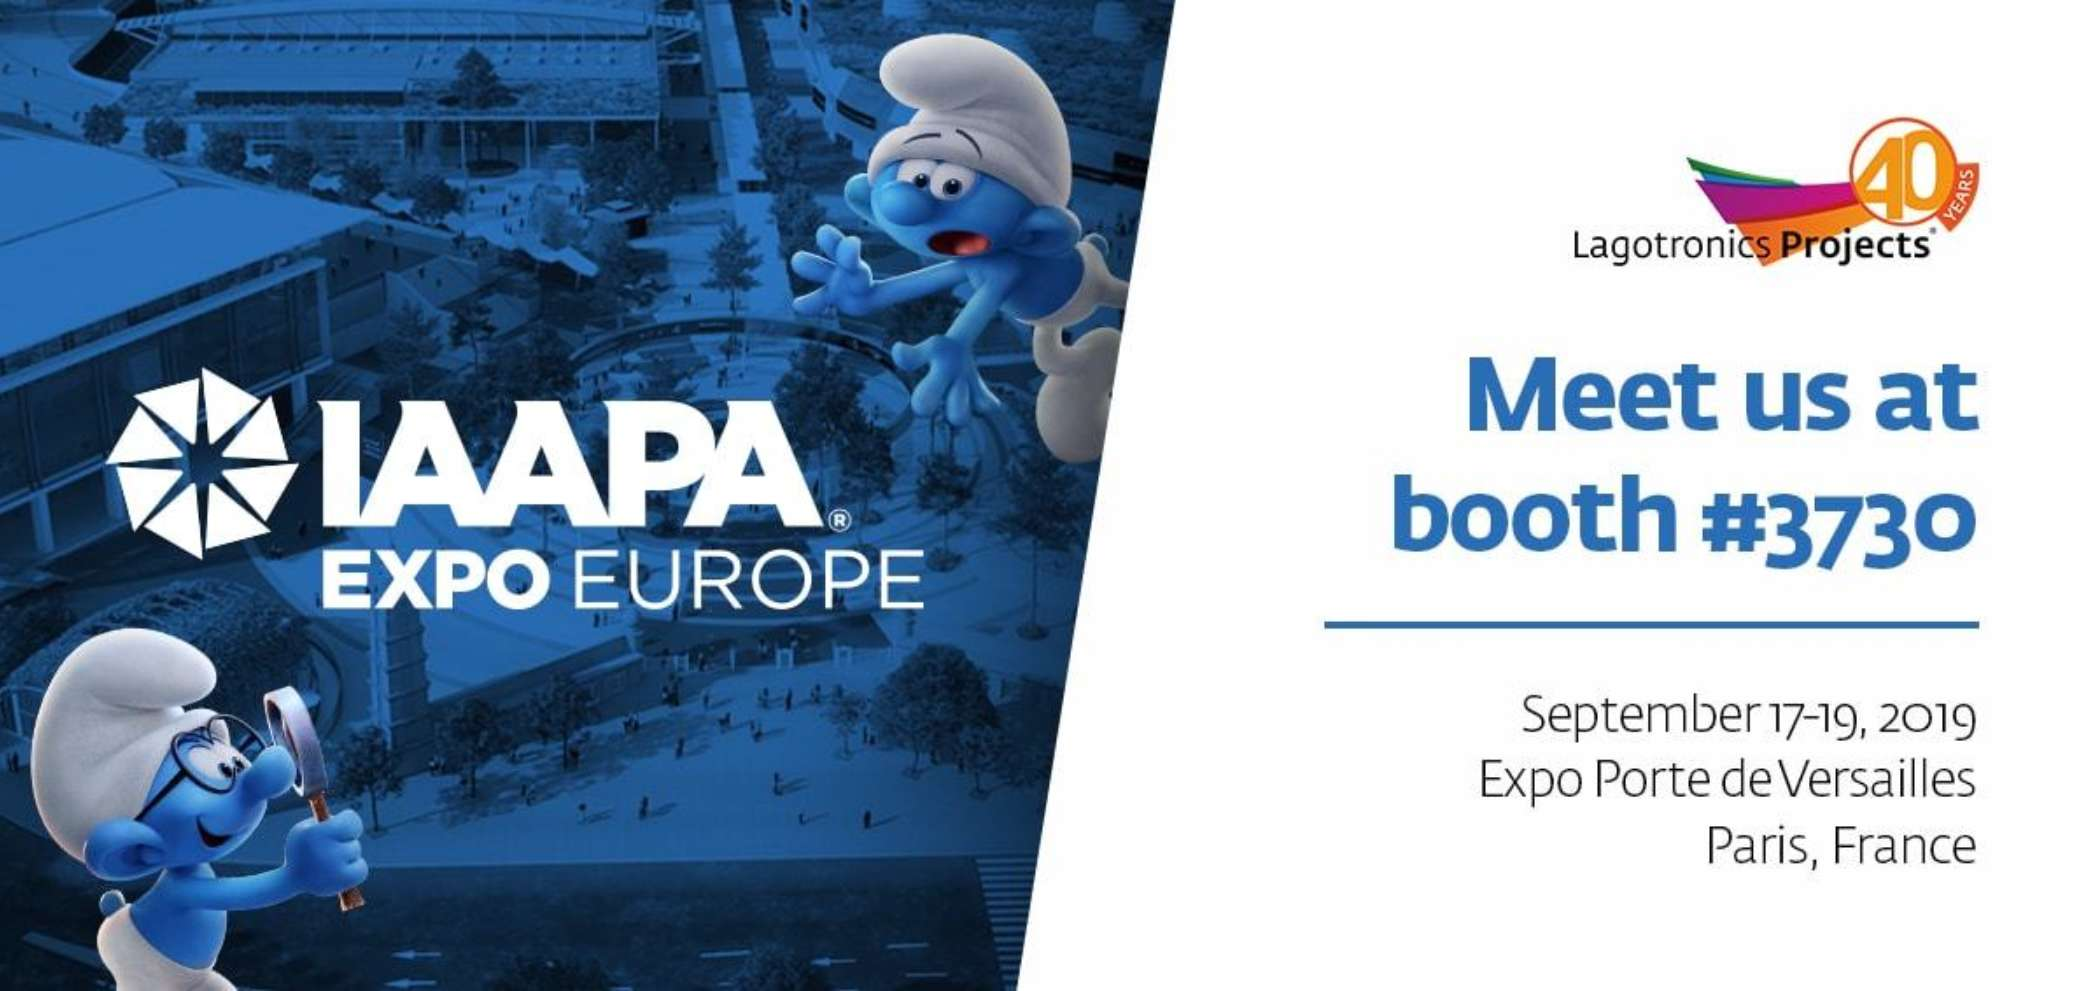 Iaapa Expo Europe Lagotronics Projects 2019 Min